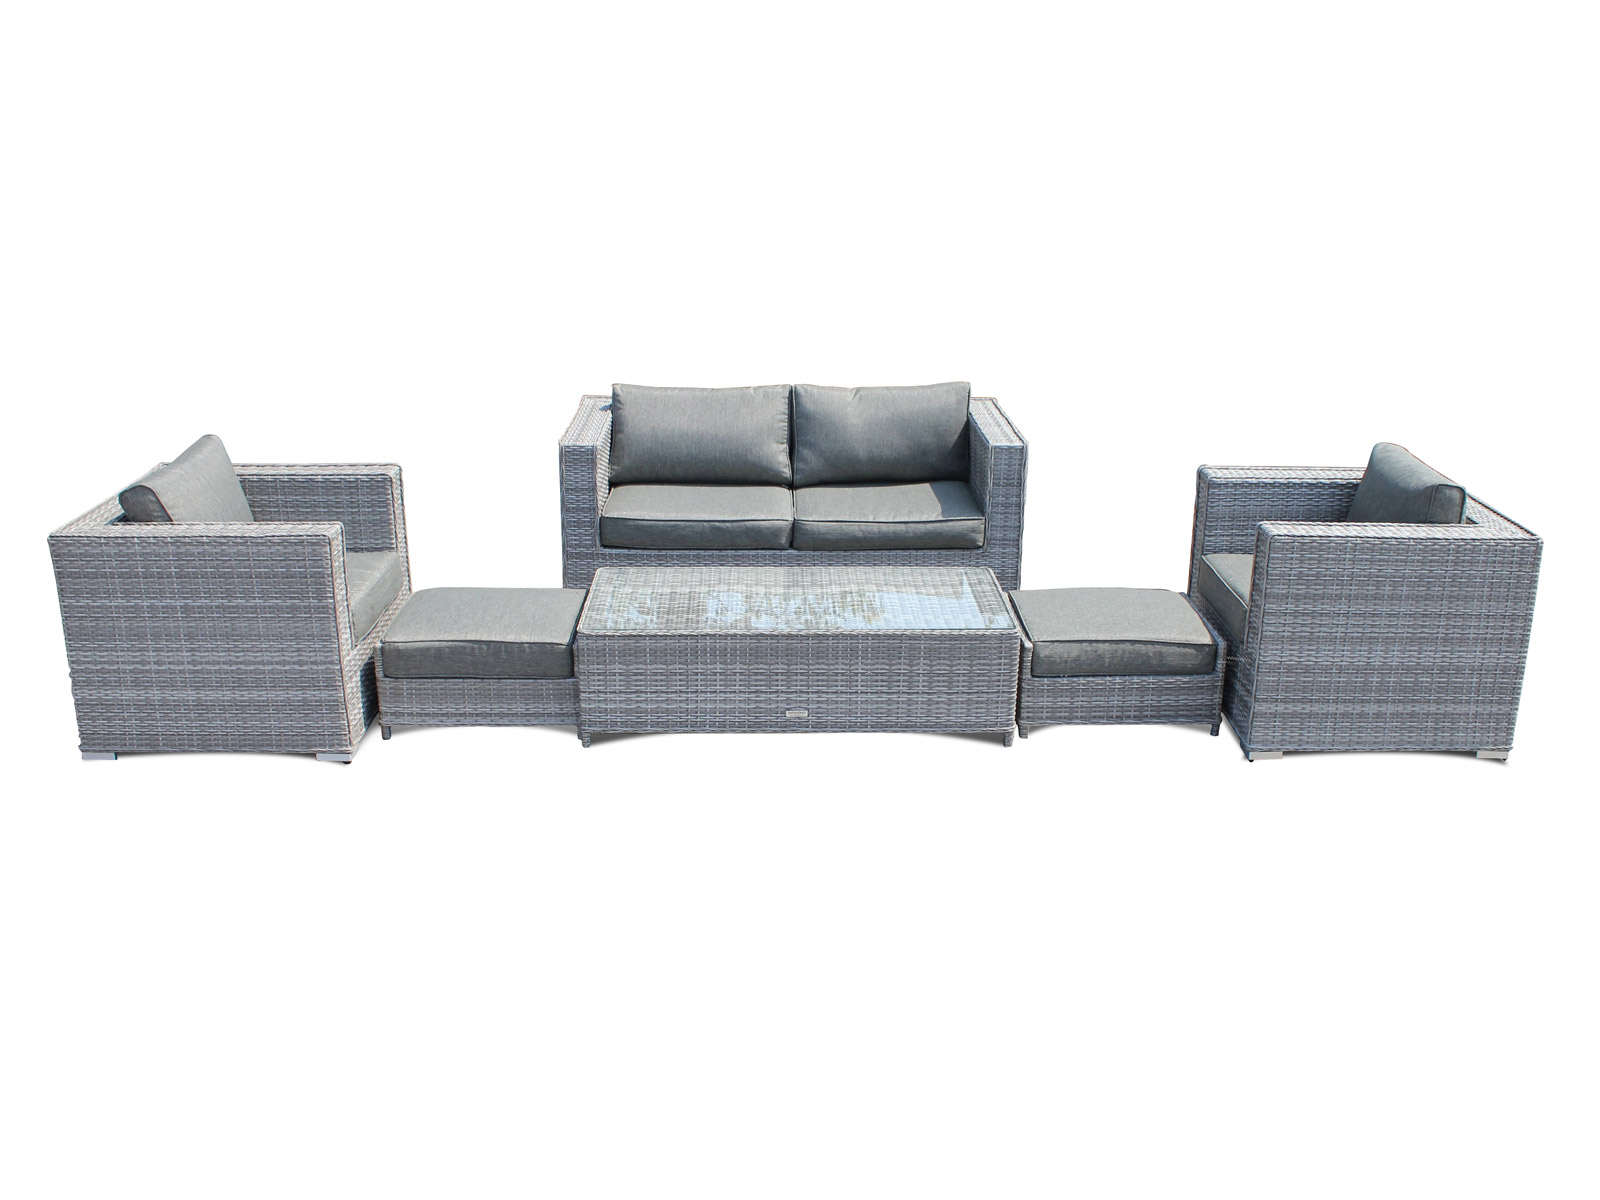 Rattan set  Ascot 2 Seater Rattan Sofa Set in Grey | Rattan Sofa Sets | Rattan ...